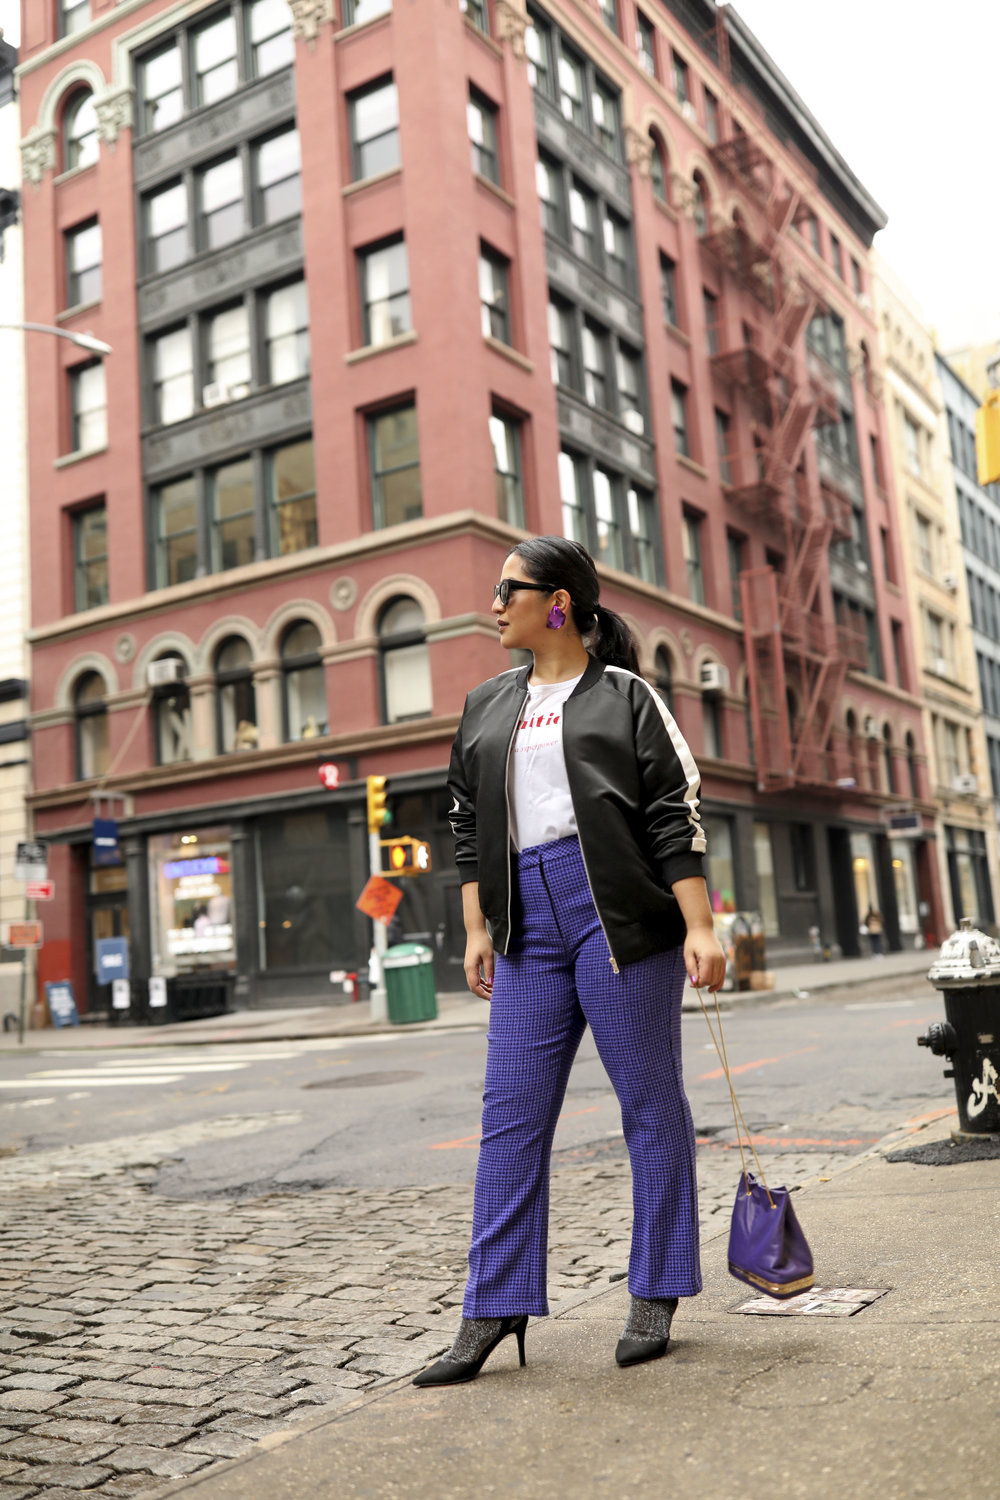 Purple Pants Casual Suit Look Bomber Jacket_4.jpg